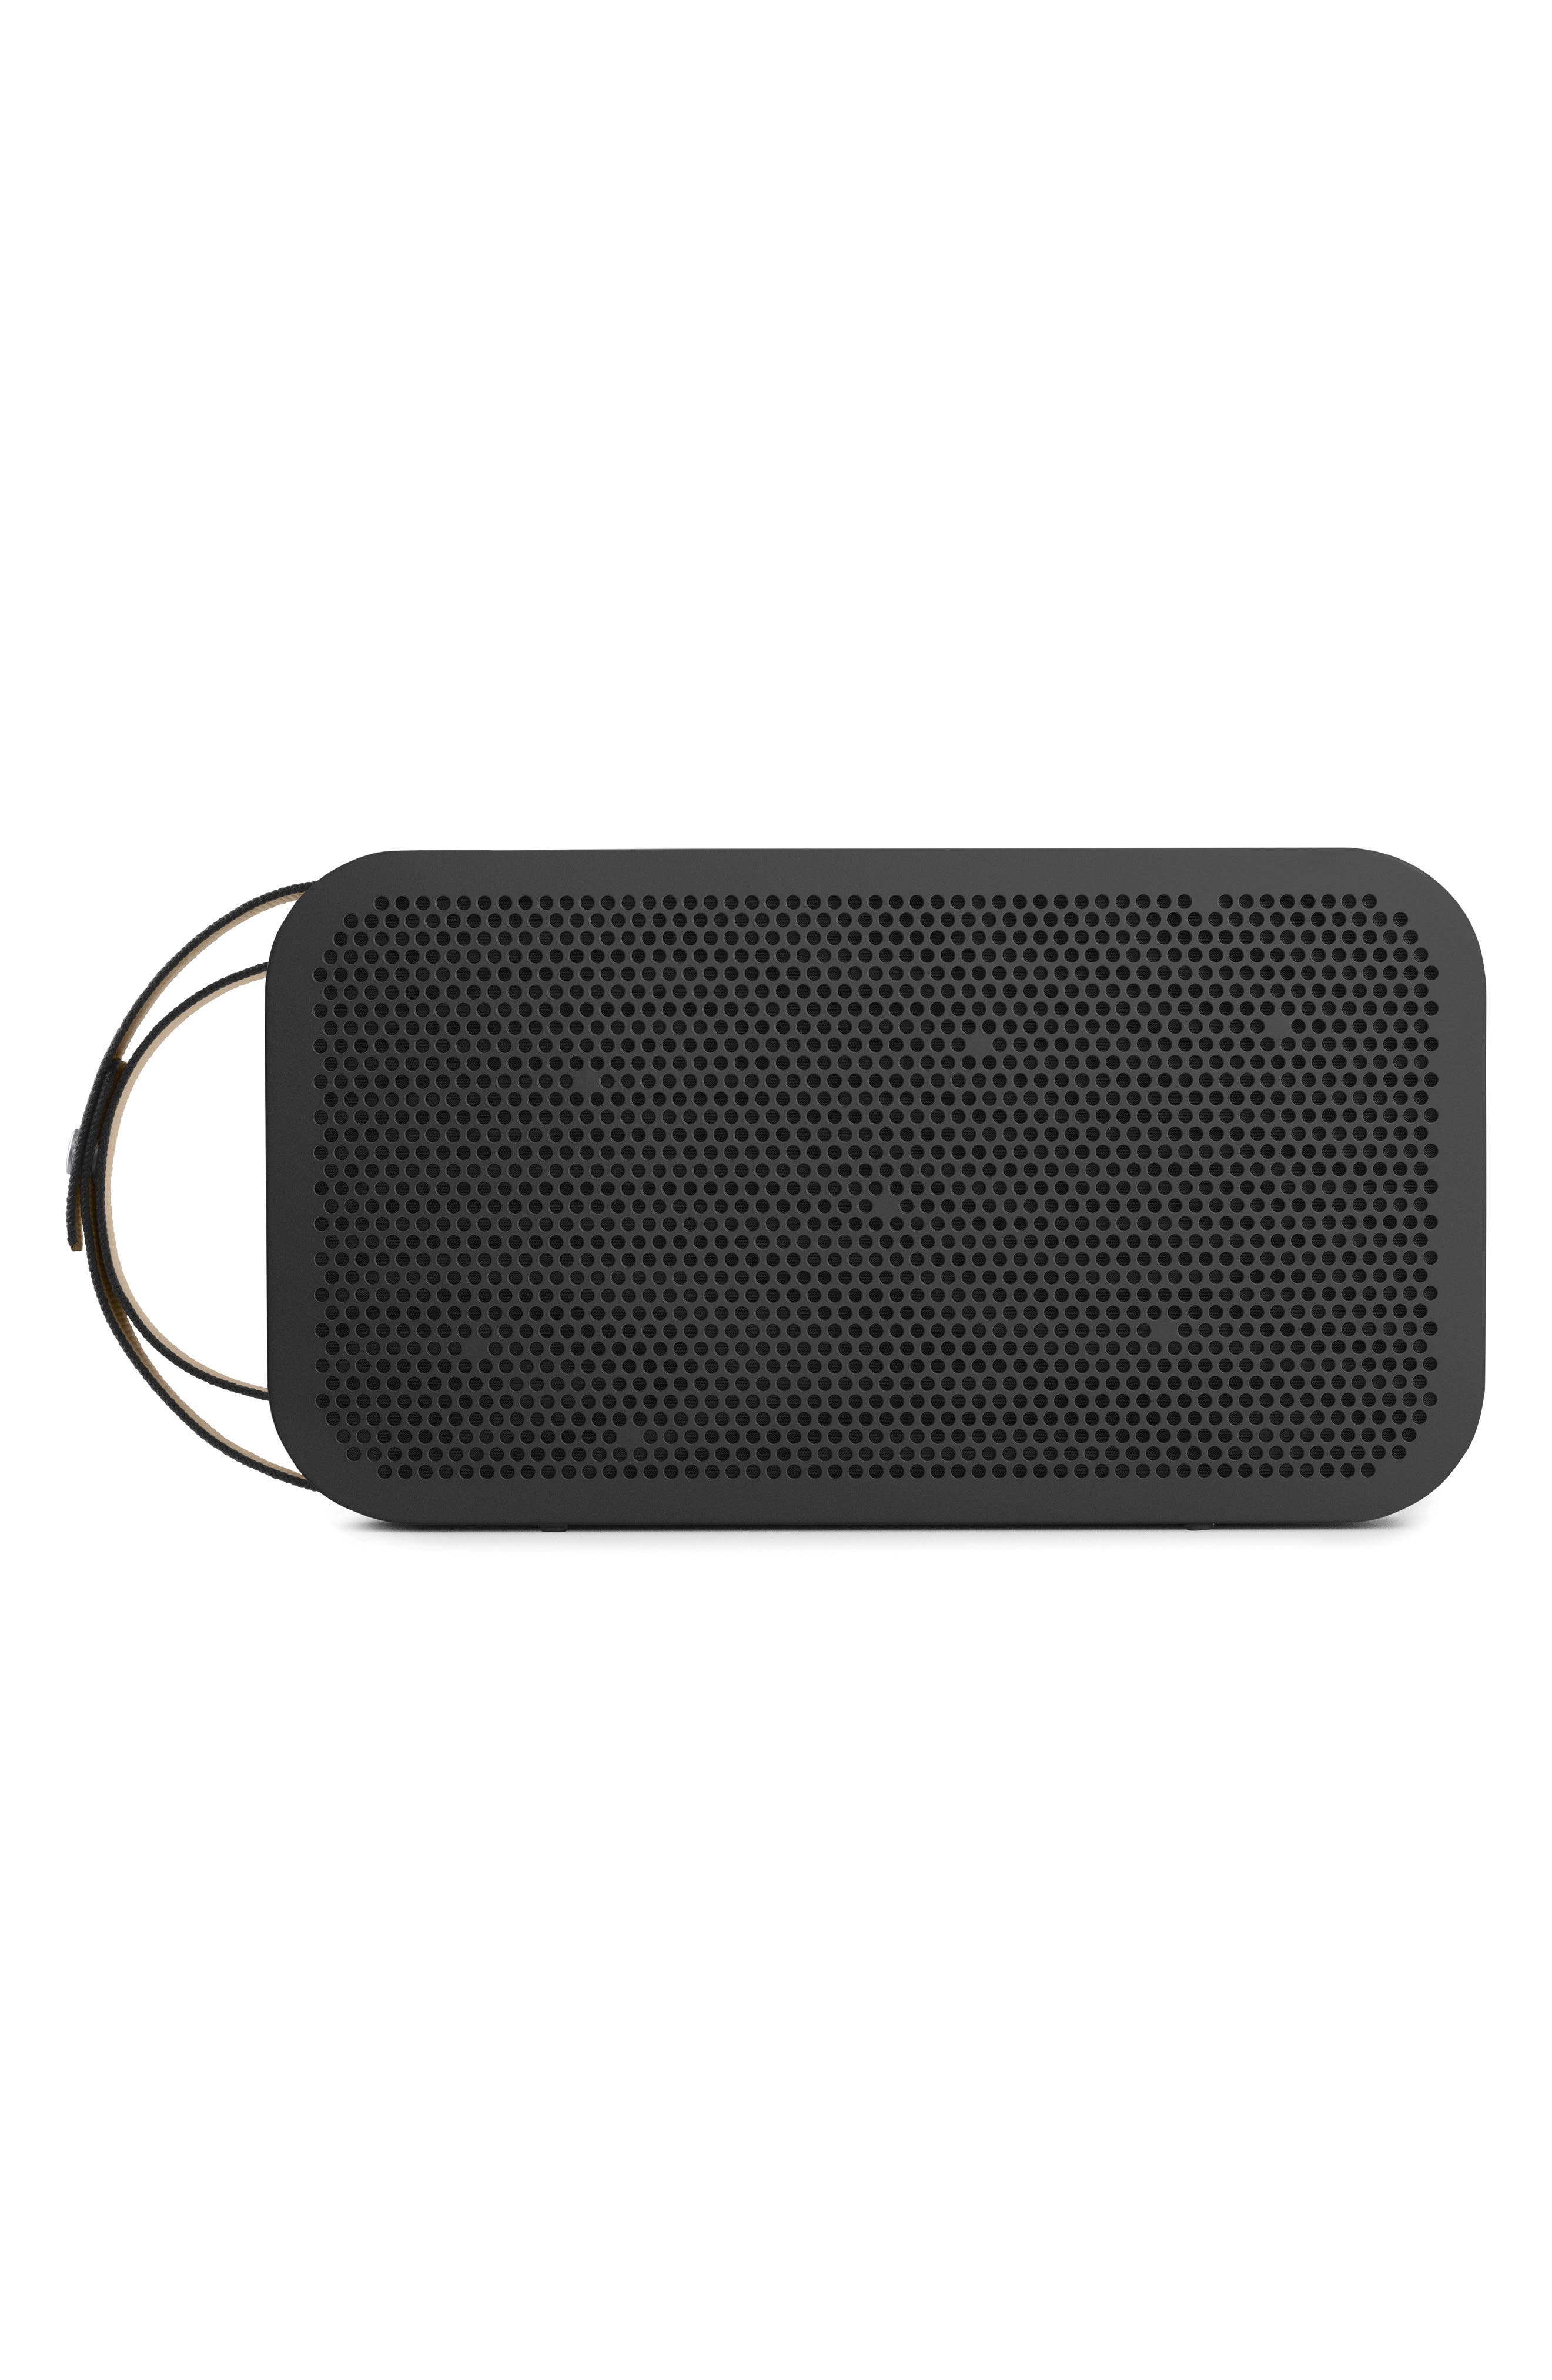 A2 Active Bluetooth Speaker,                         Main,                         color, 021